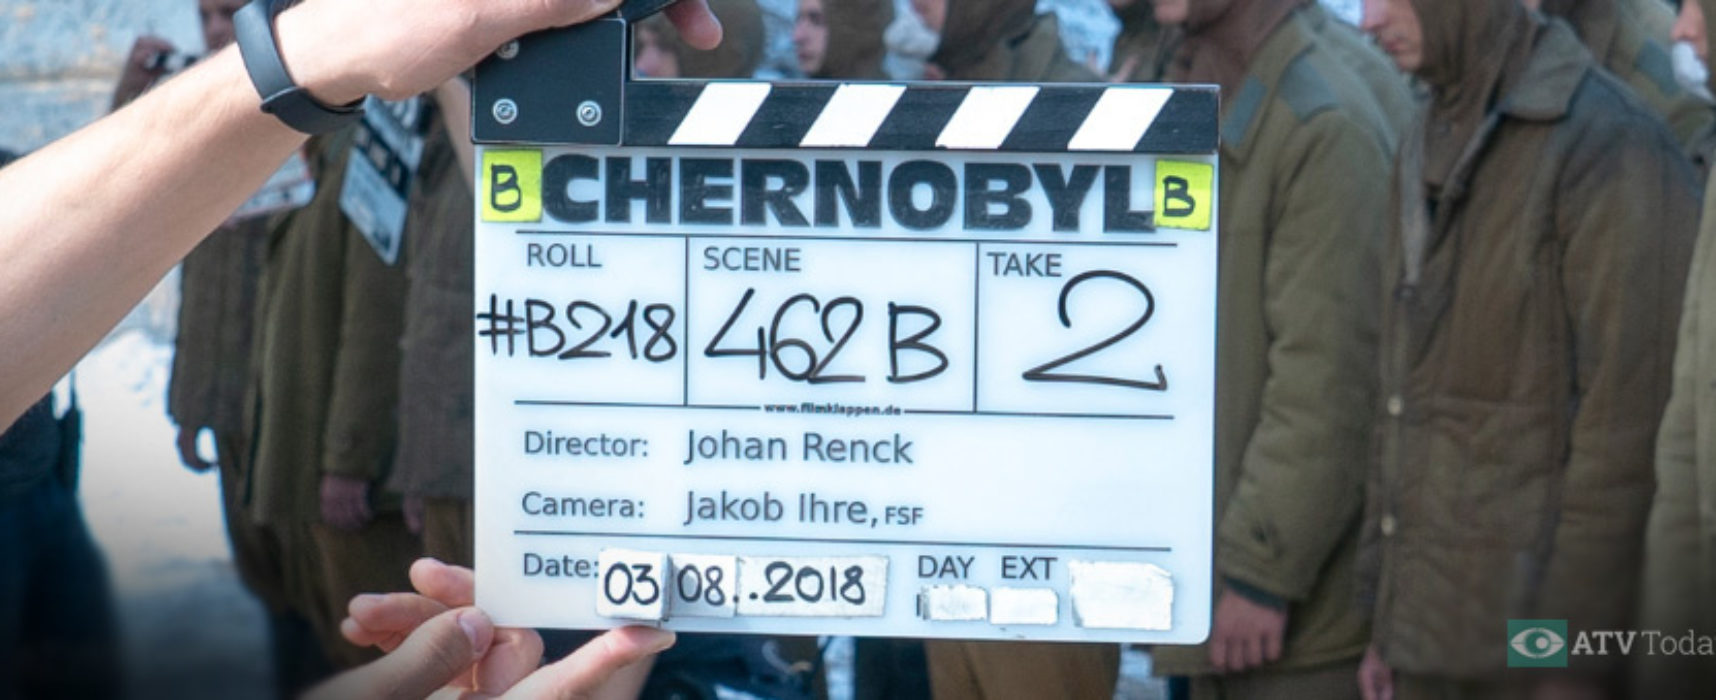 Sky Atlantic's Chernobyl DVD, Blu-ray and download release dates announced